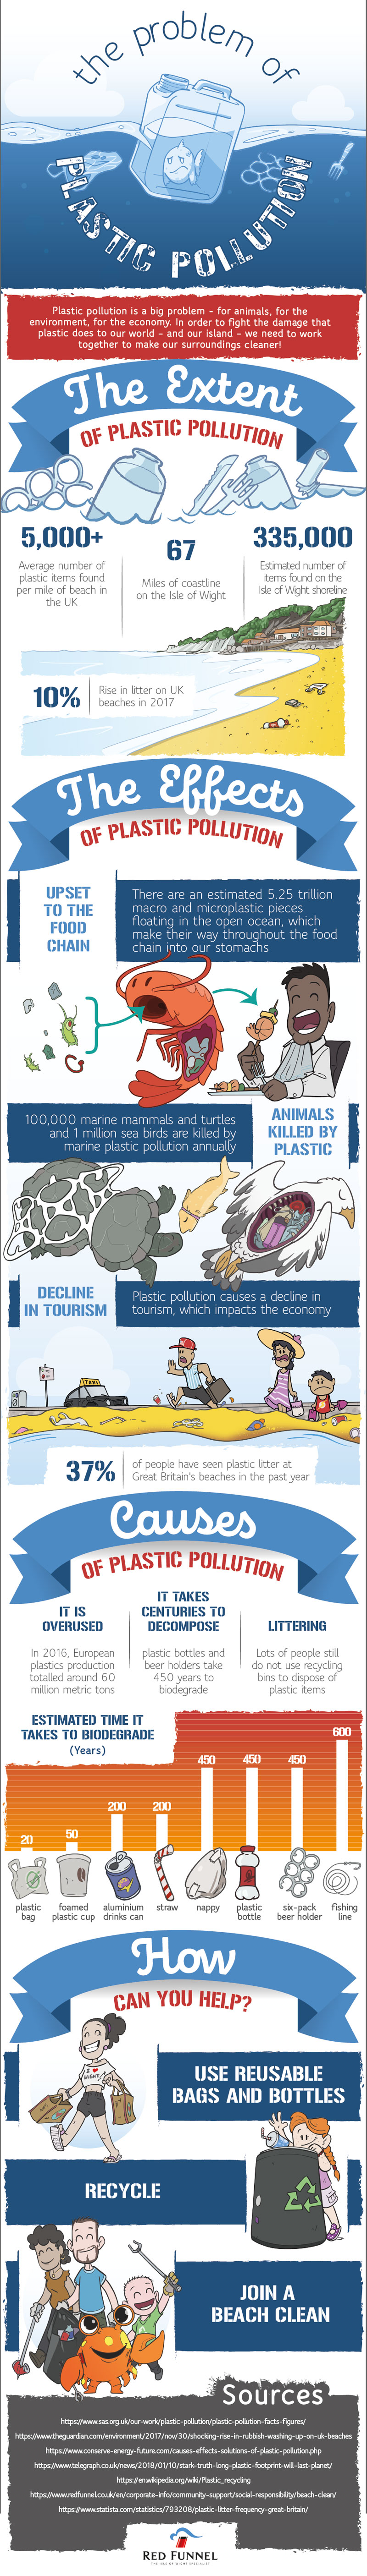 The Problem of Plastic Pollution